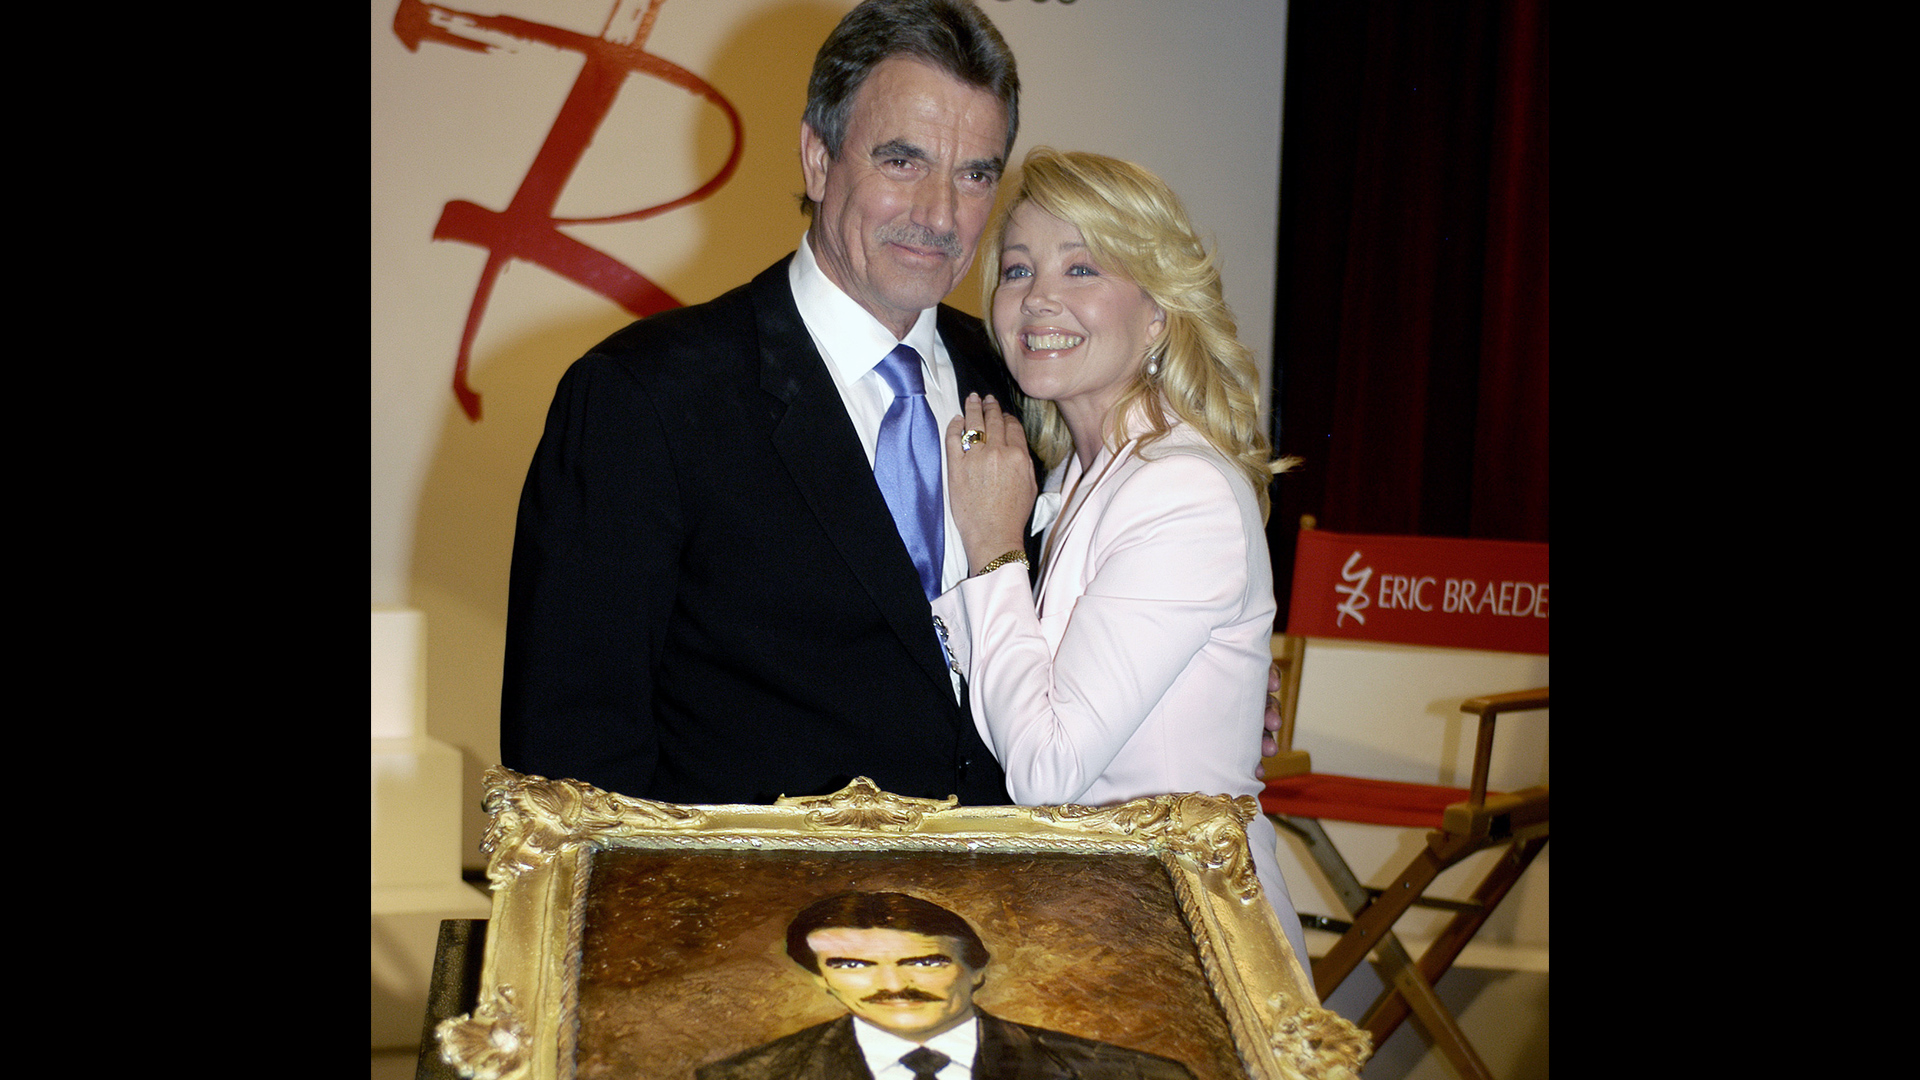 Melody Thomas Scott beams as Y&R honors her long-time co-star, Eric Braeden.